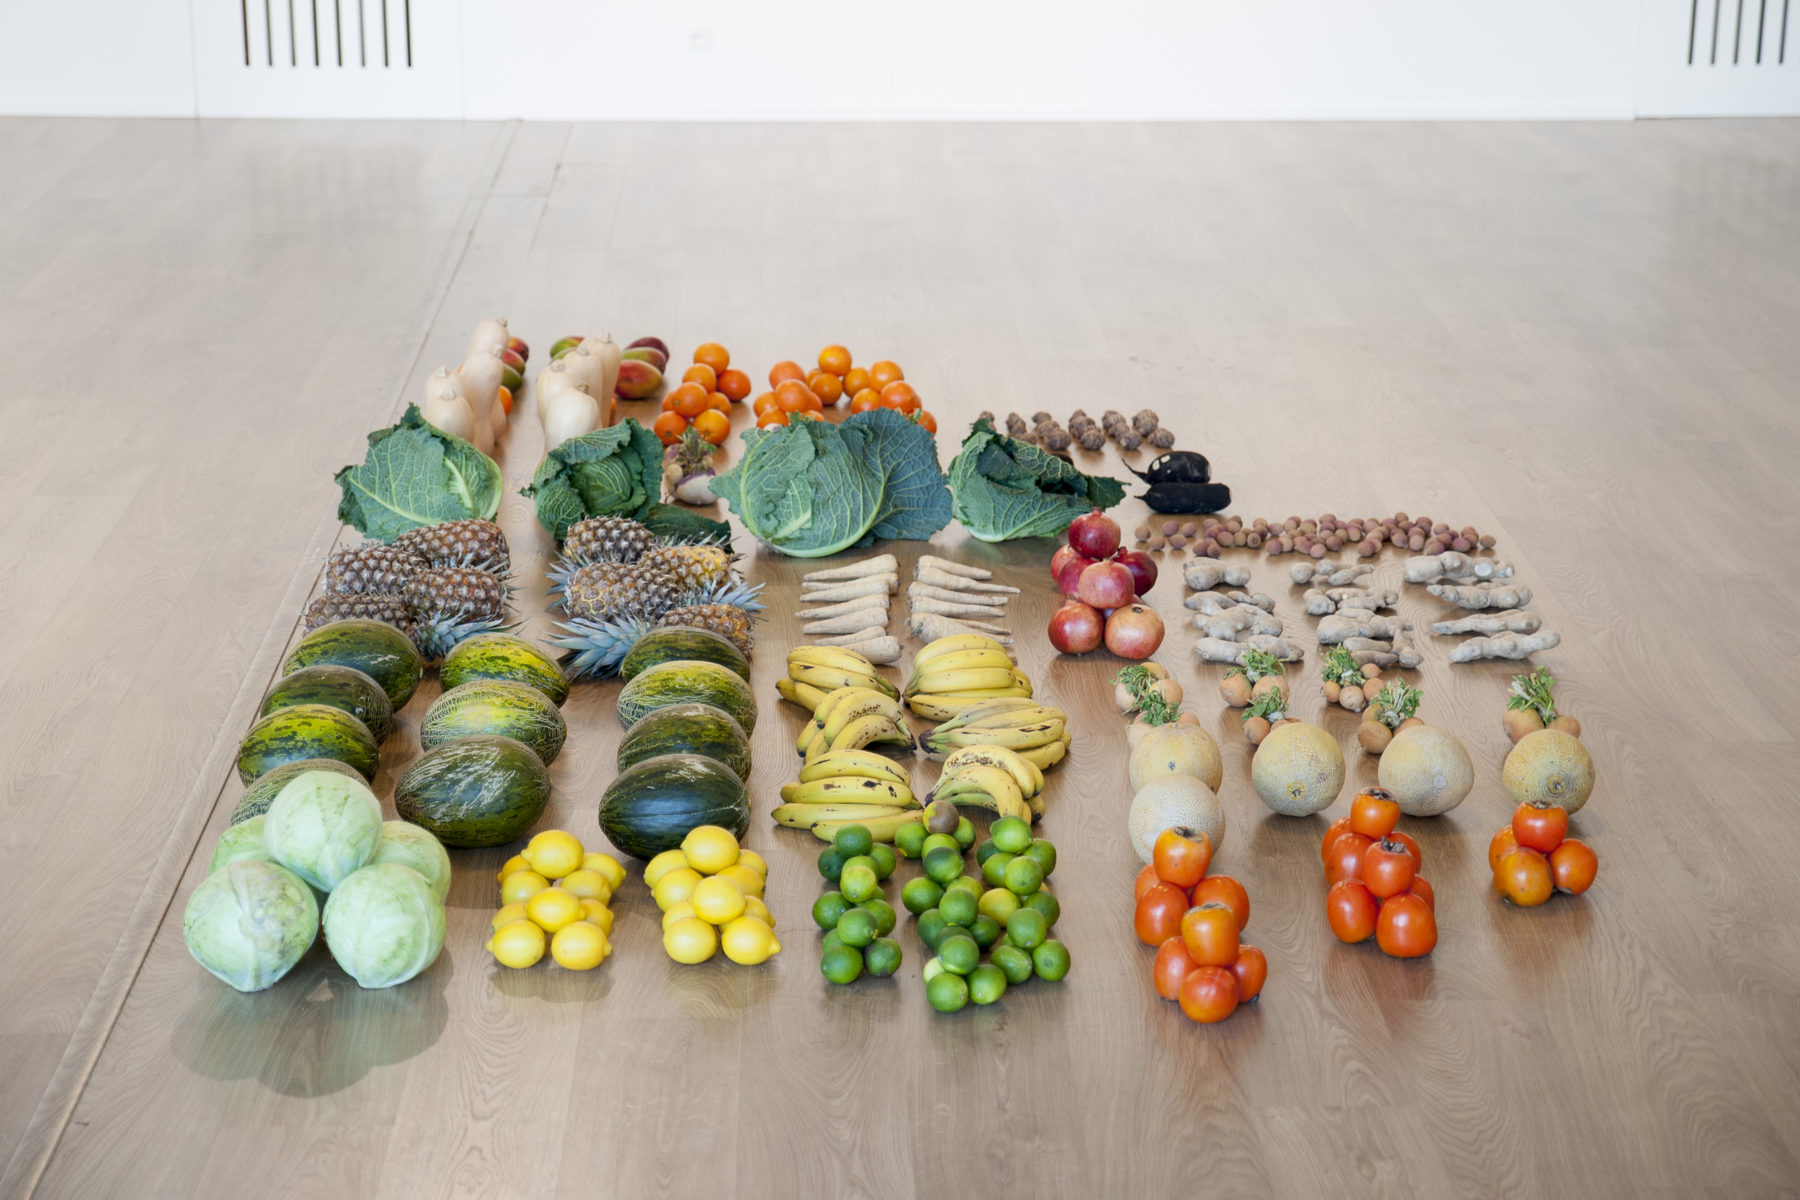 Raffaella Crispino, Untitled (Fruits and vegetables)